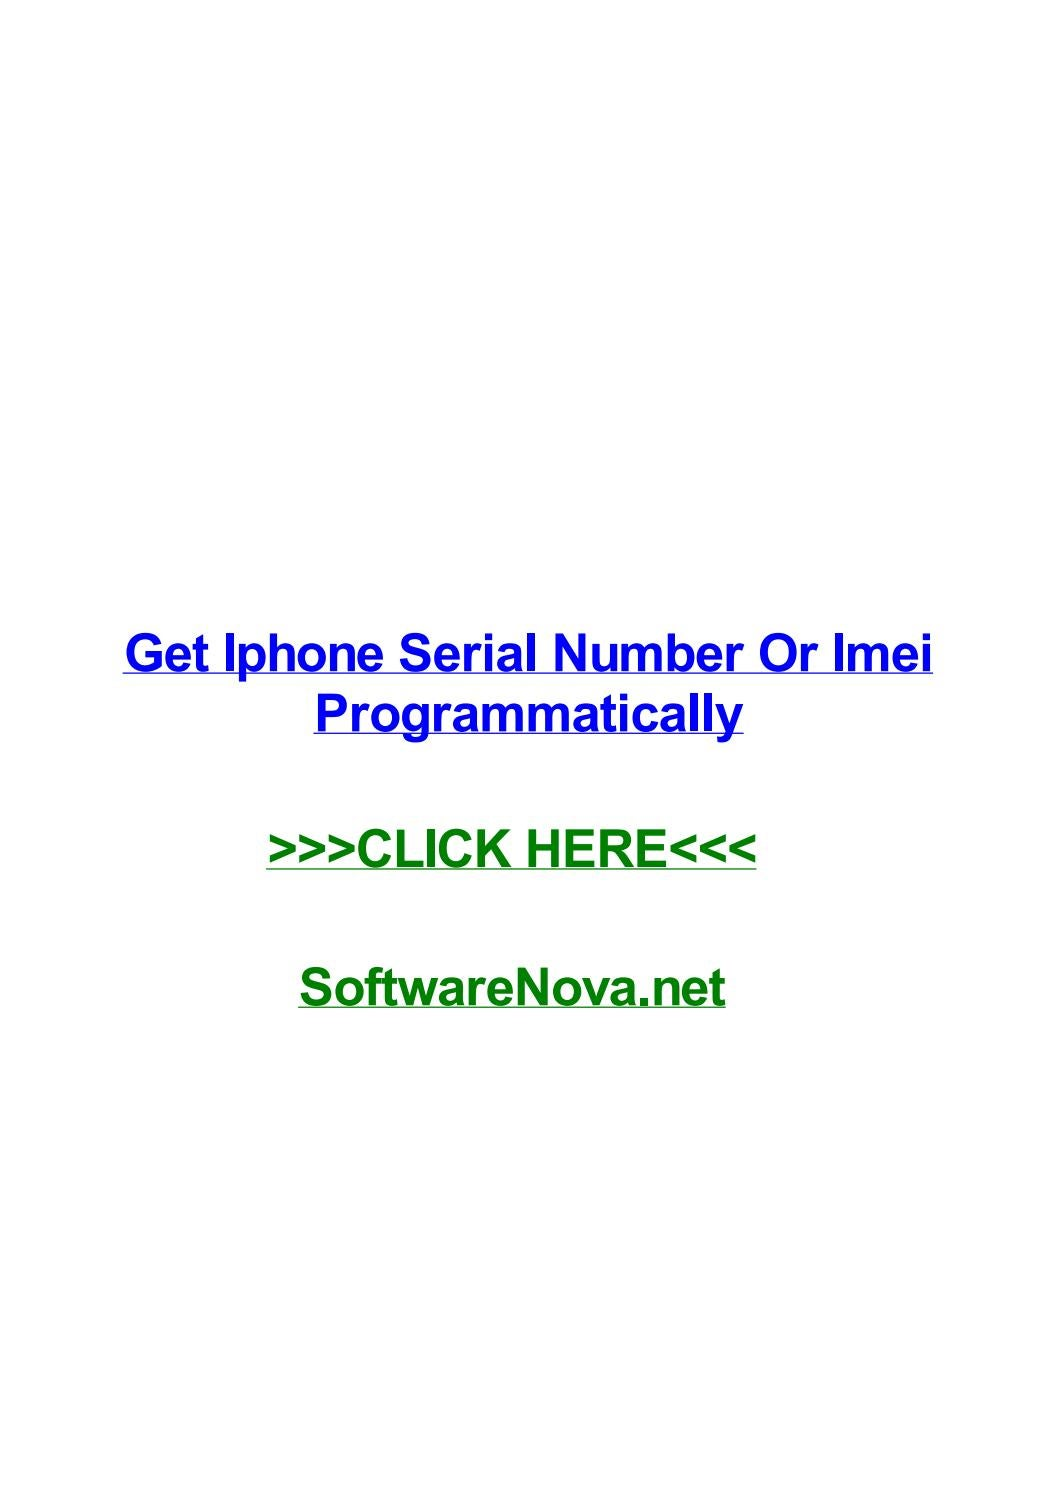 Get iphone serial number or imei programmatically by